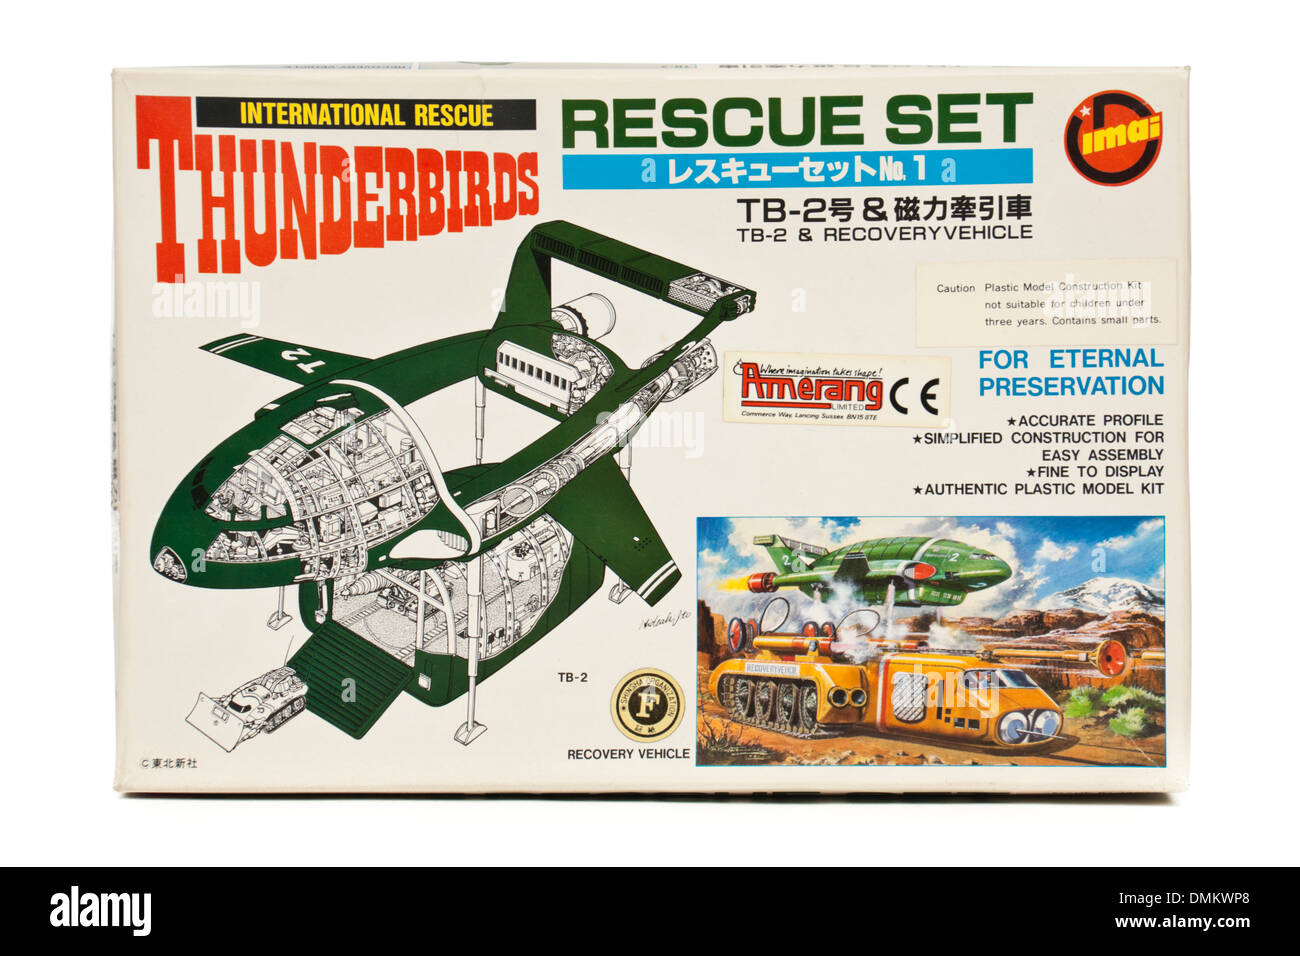 Thunderbirds 'TB-2 and Recovery Vehicle' plastic model construction kit by IMAI of Japan, based on the popular 1960's TV-series - Stock Image